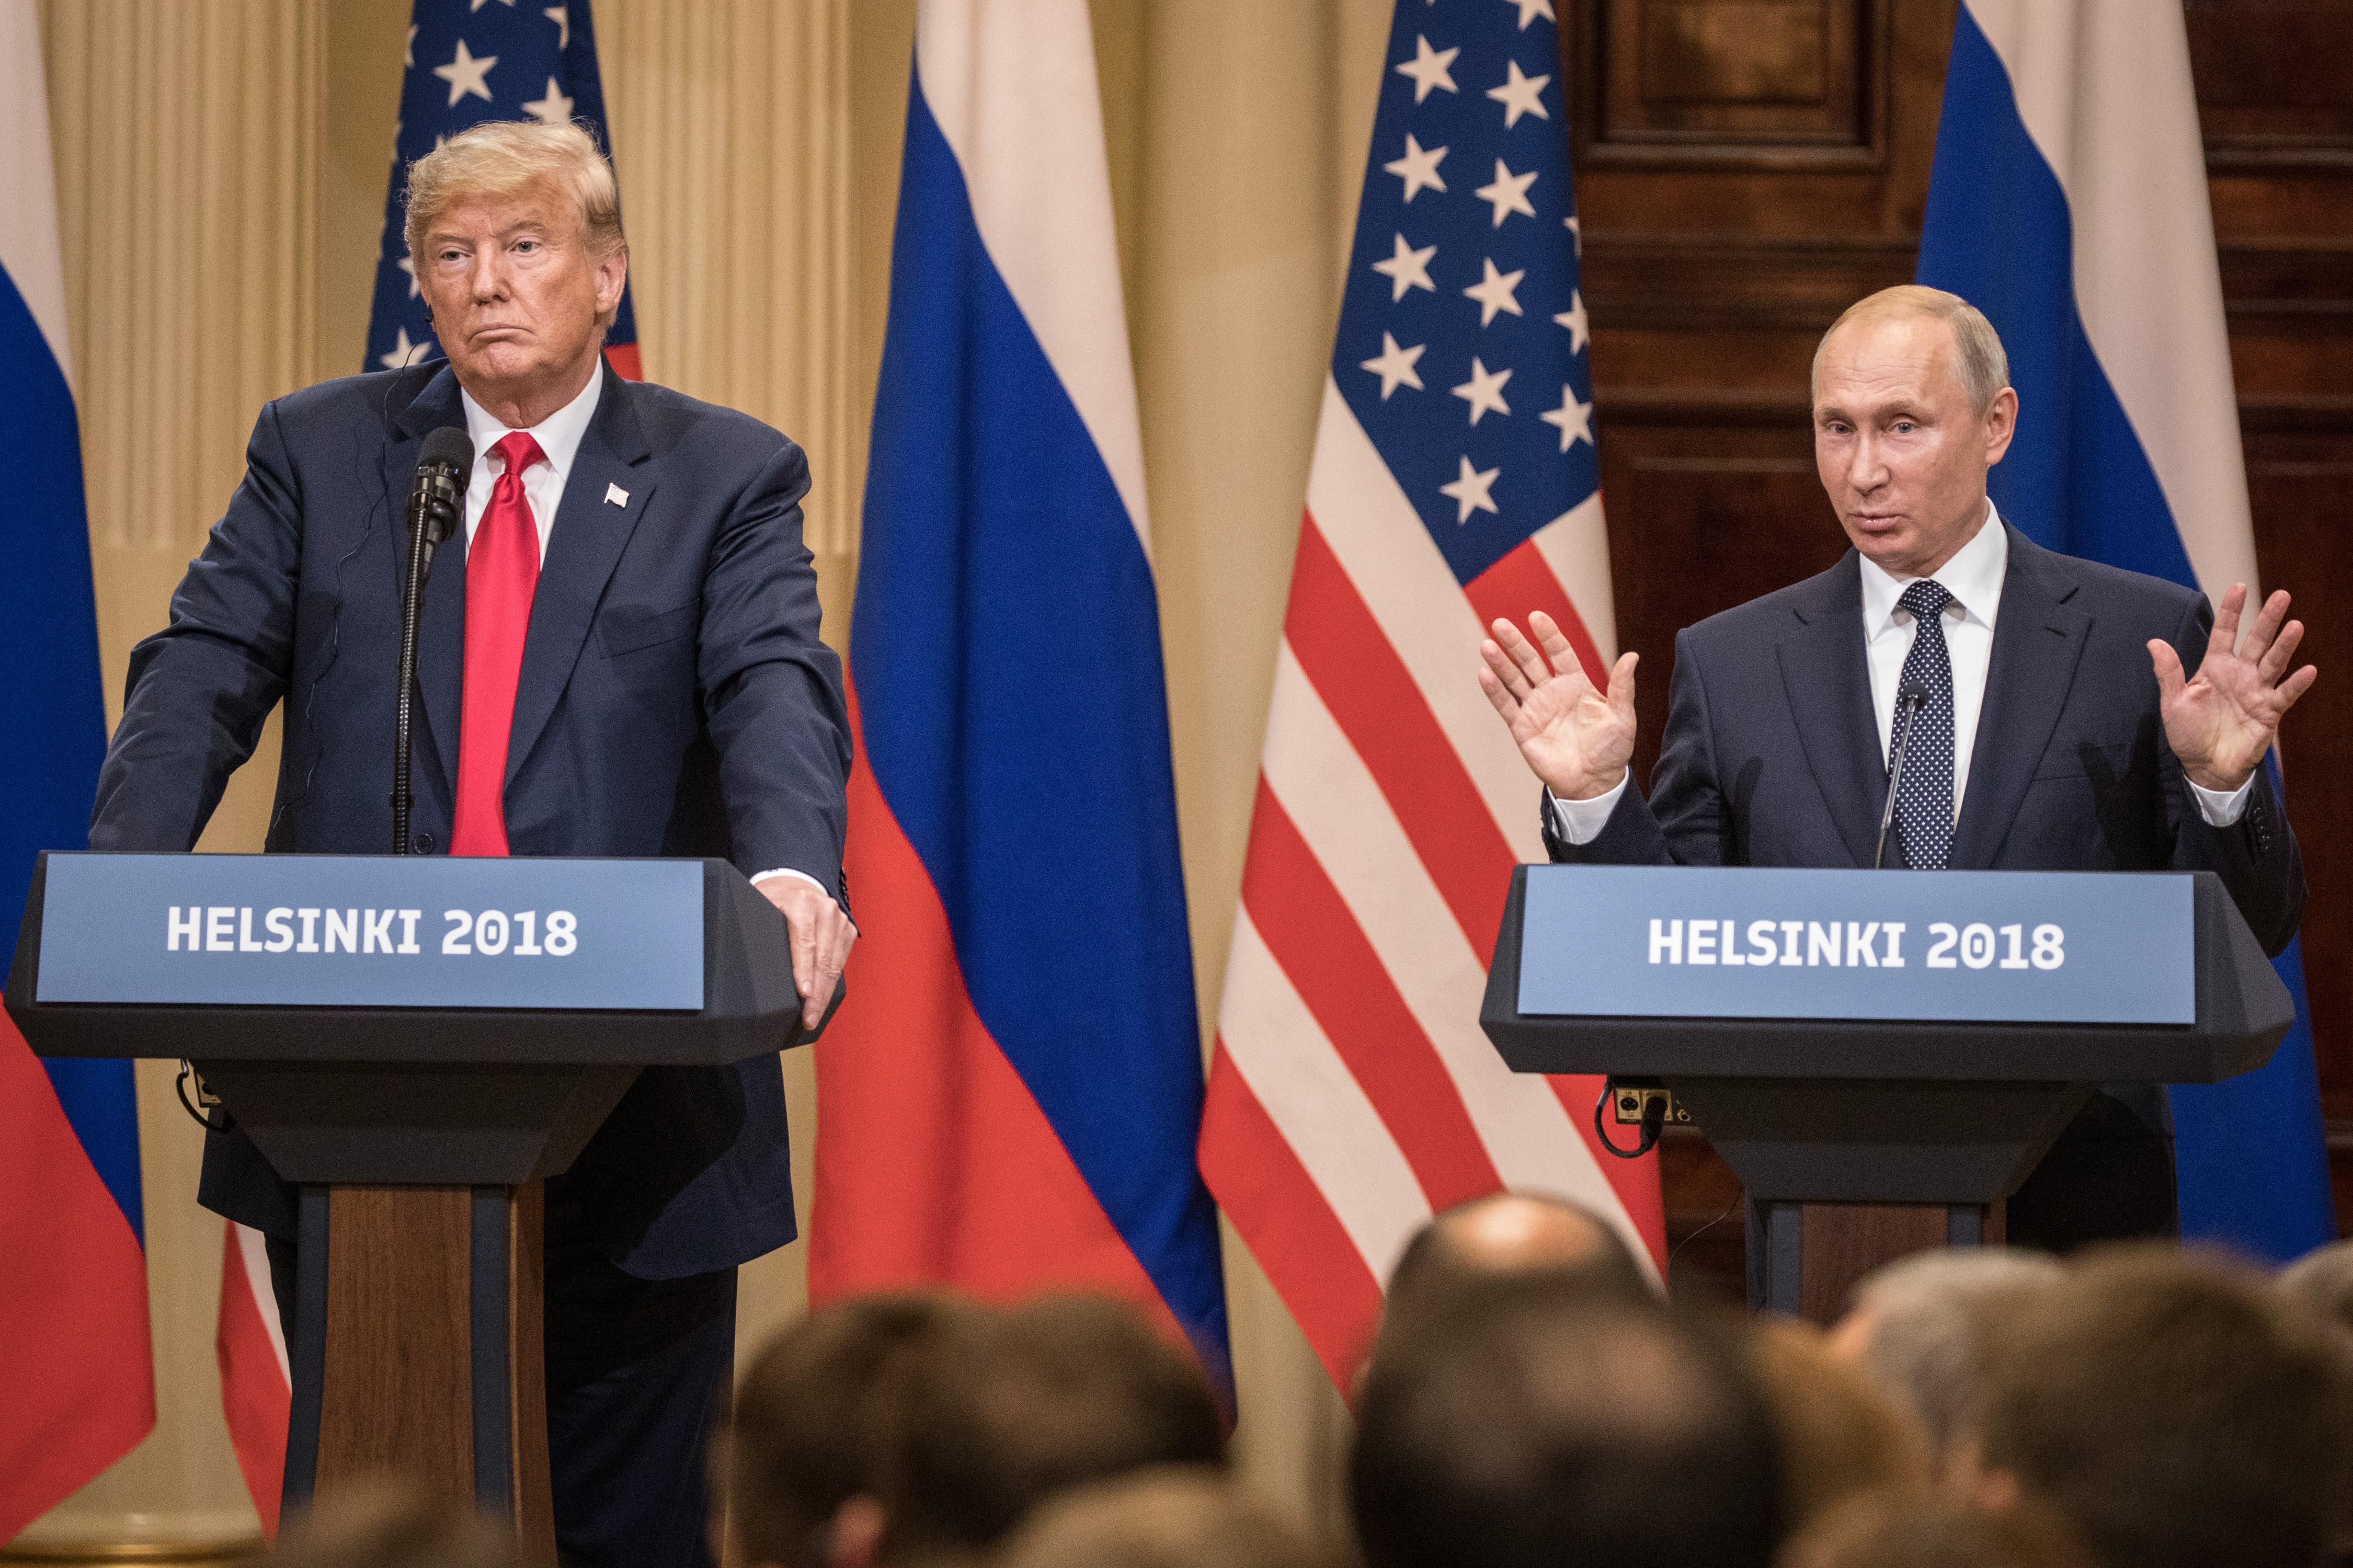 President Donald Trump, left, and Russian President Vladimir Putin answer questions